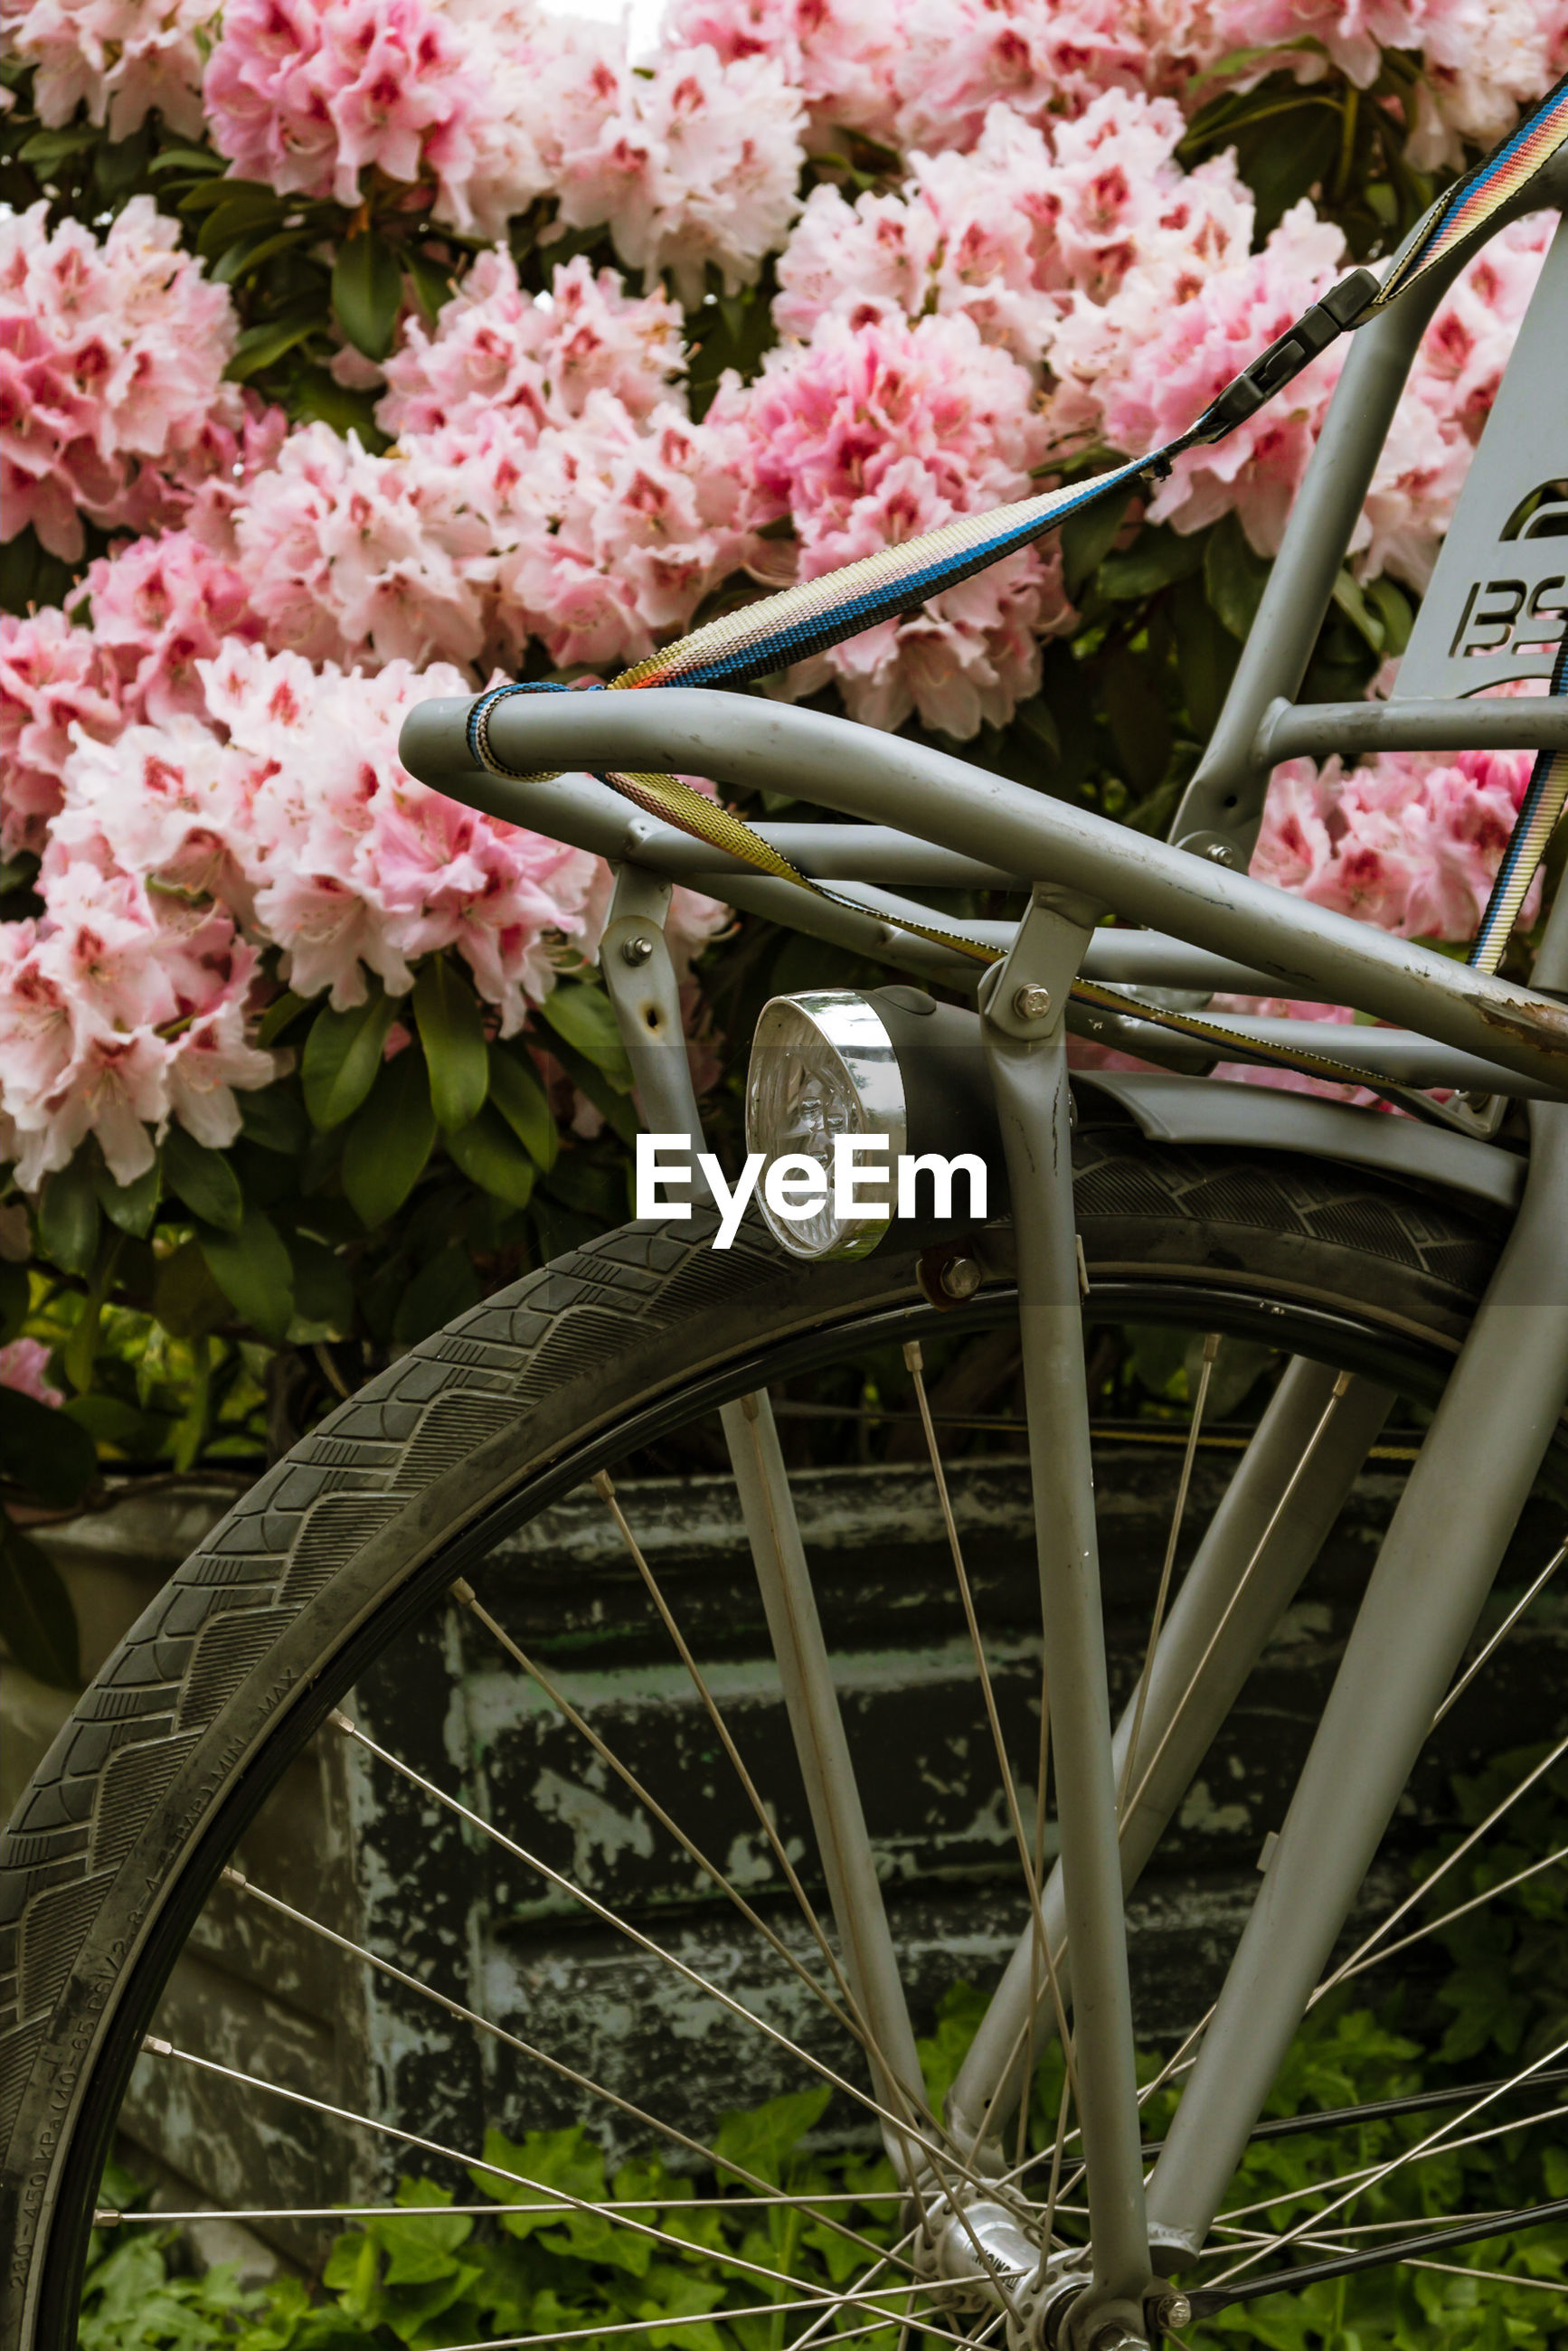 plant, flower, flowering plant, pink color, freshness, growth, nature, day, transportation, fragility, beauty in nature, land vehicle, mode of transportation, vulnerability, close-up, no people, outdoors, bicycle, springtime, basket, gardening, wheel, spoke